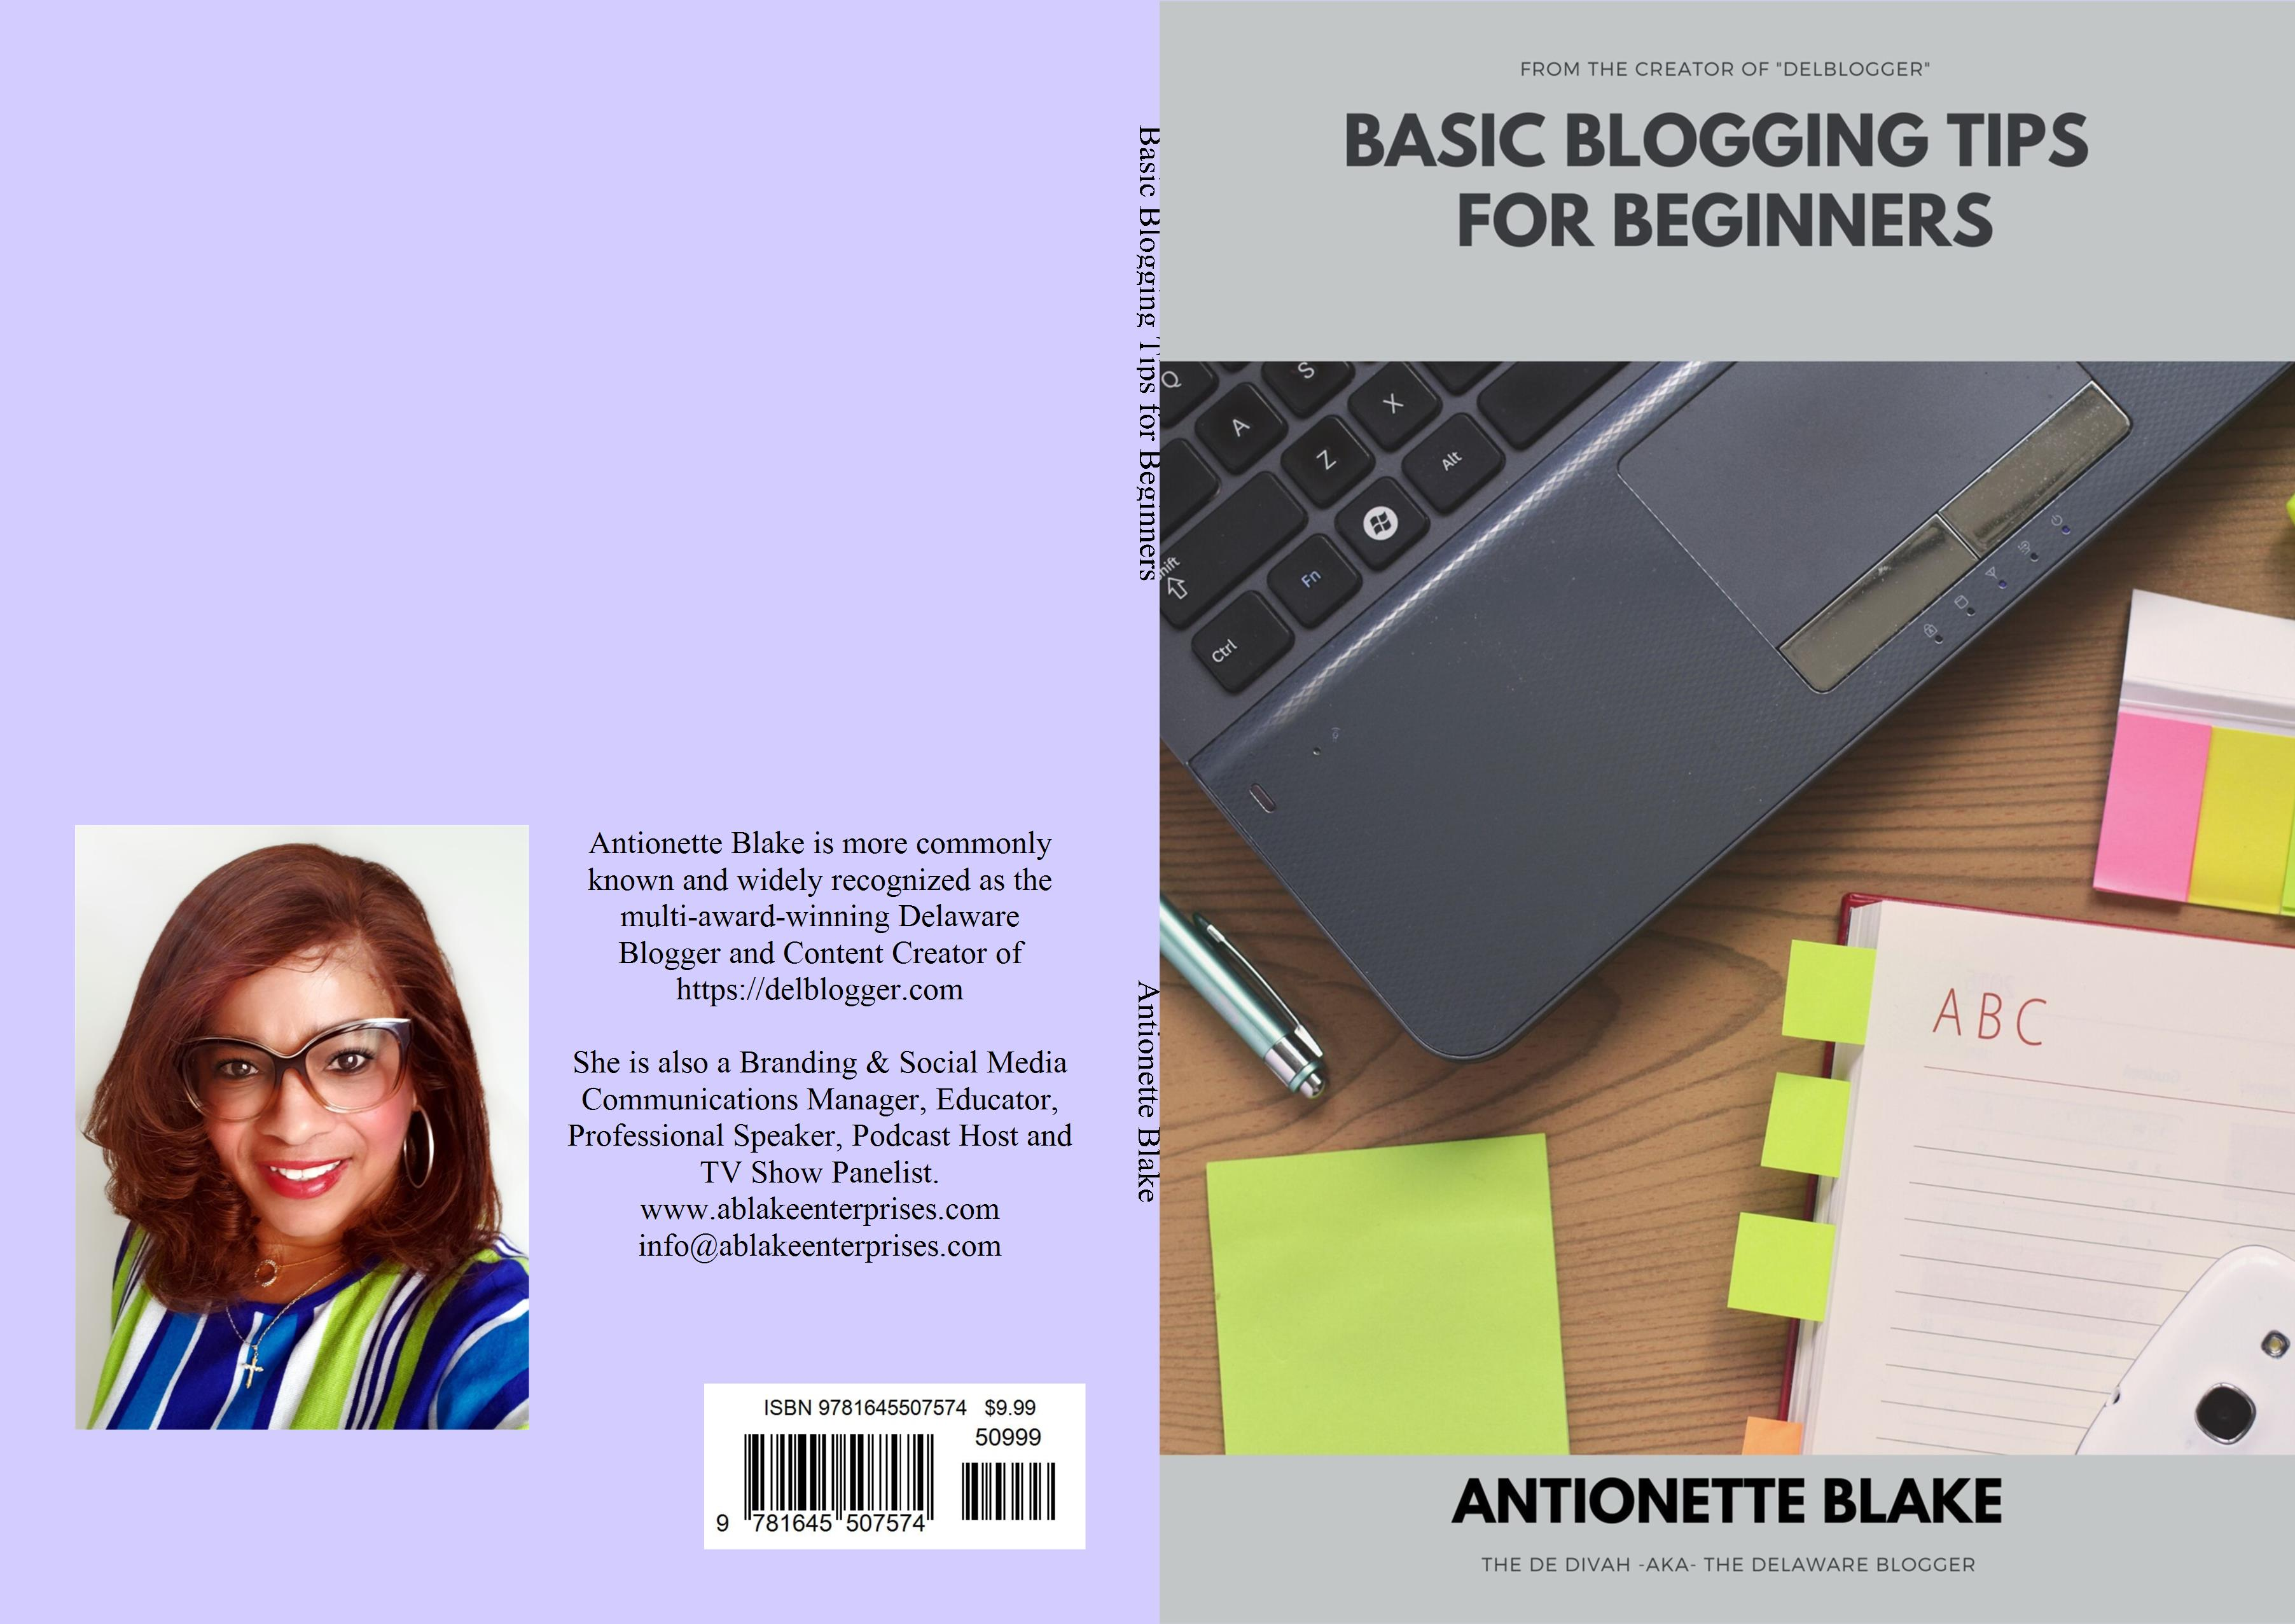 Basic Blogging Tips for Beginners cover image